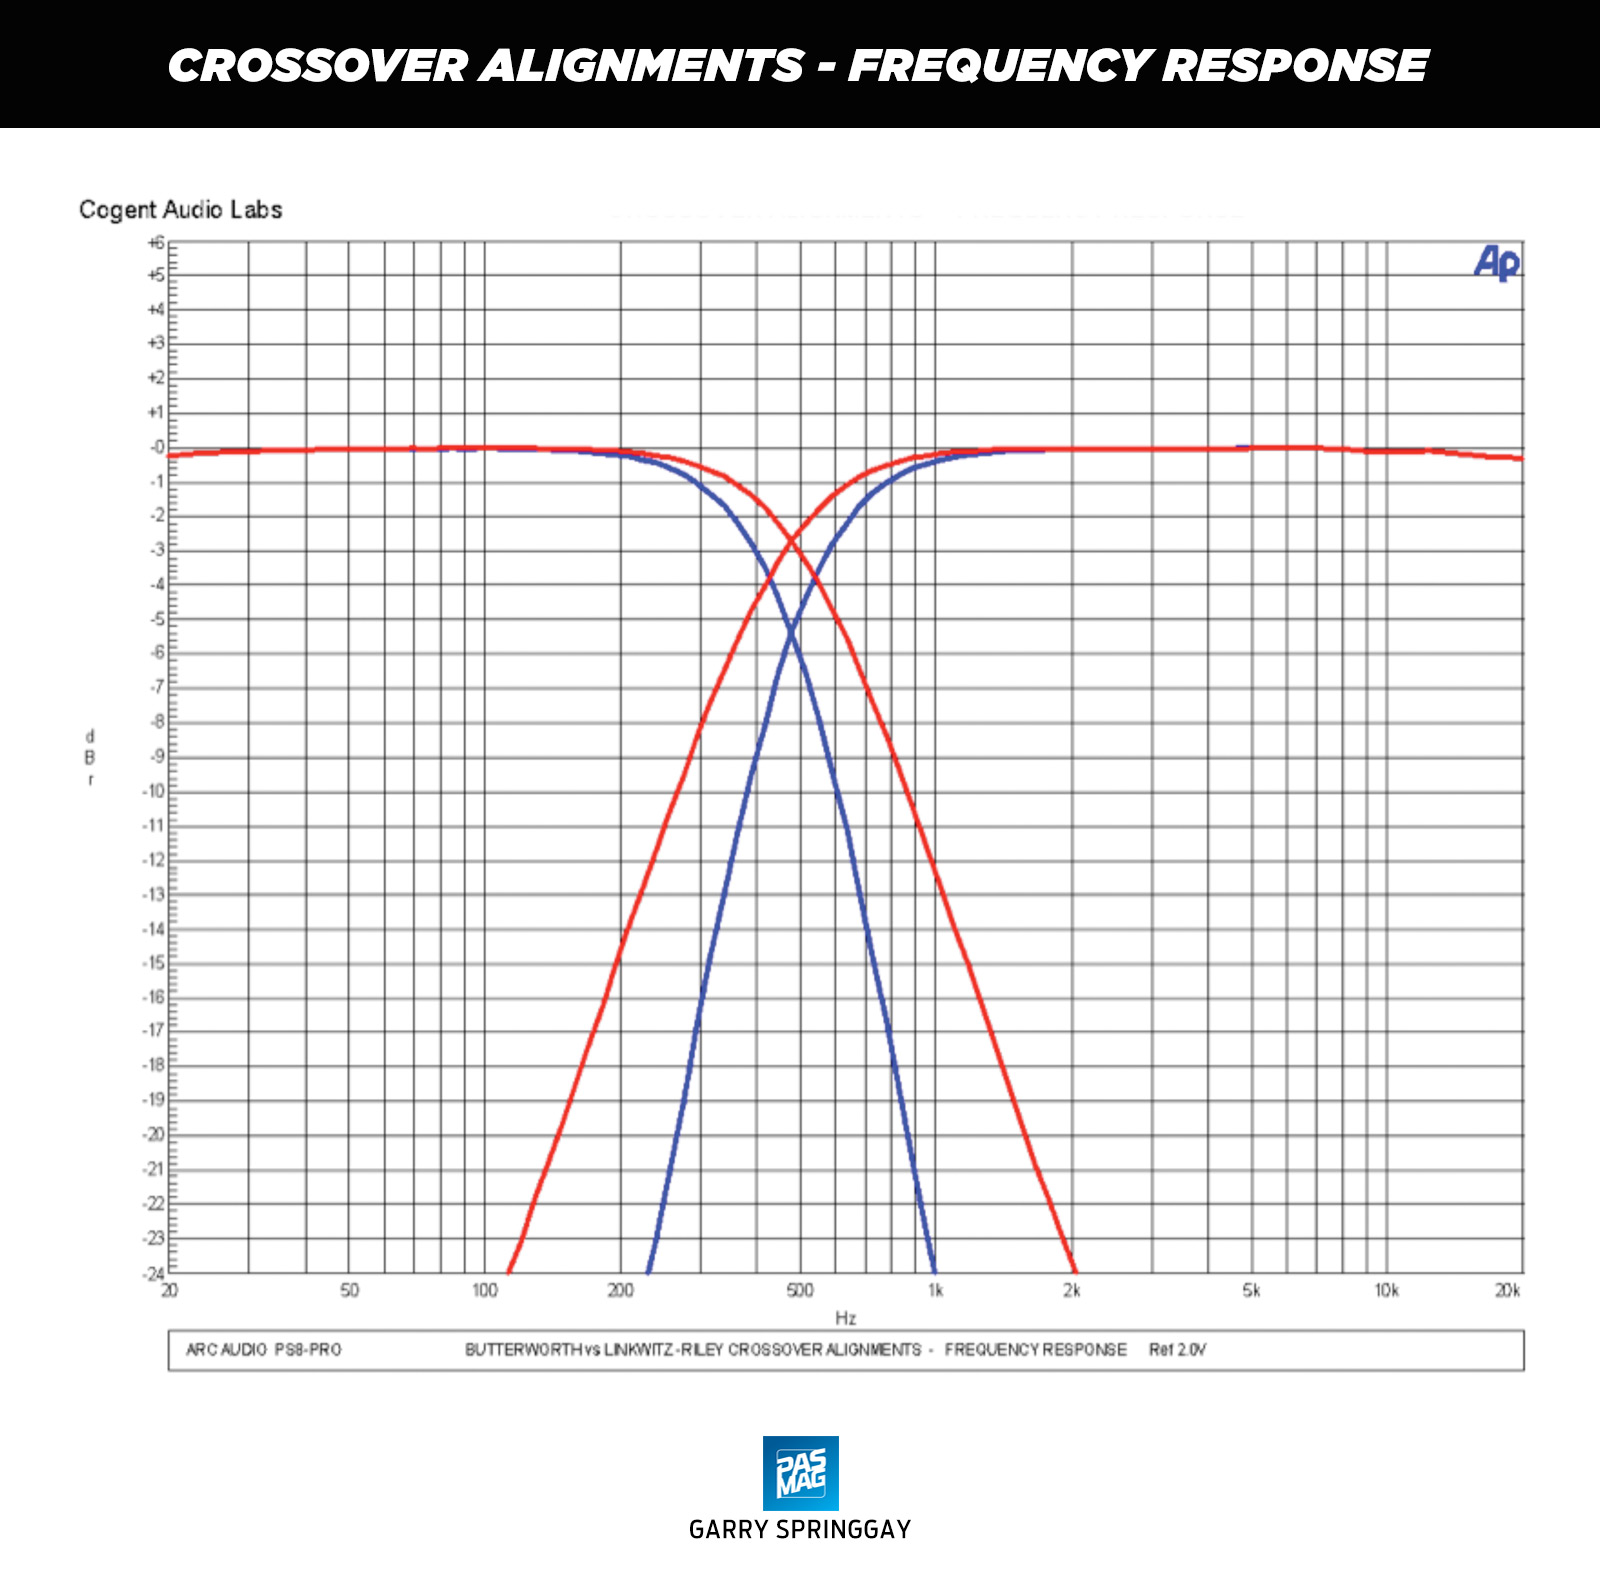 10 Arc Audio PS8 Pro Chart Crossover Alignments Frequency Response